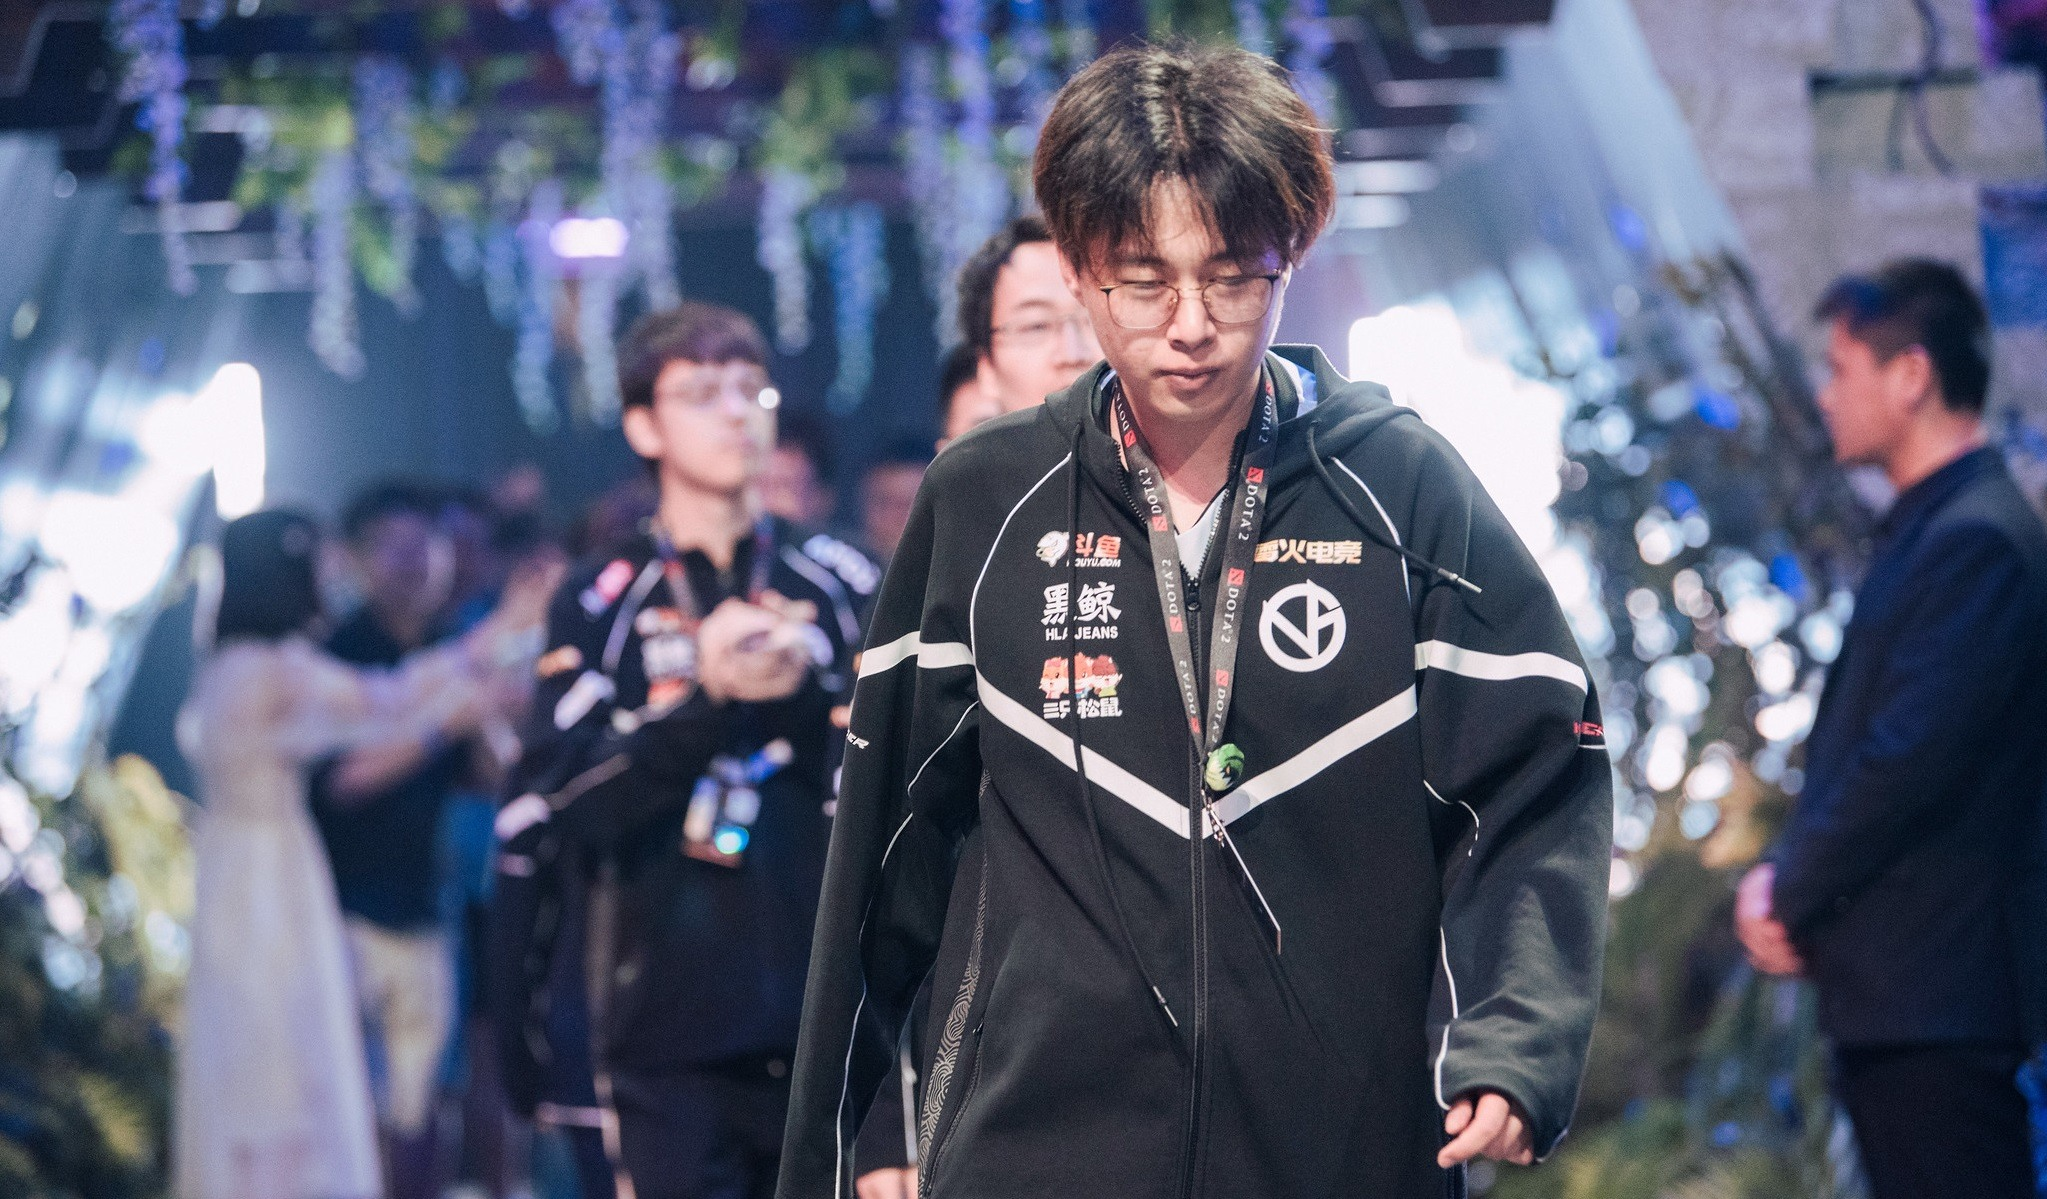 TI9 Day 3 Fantasy Roster The International 2019